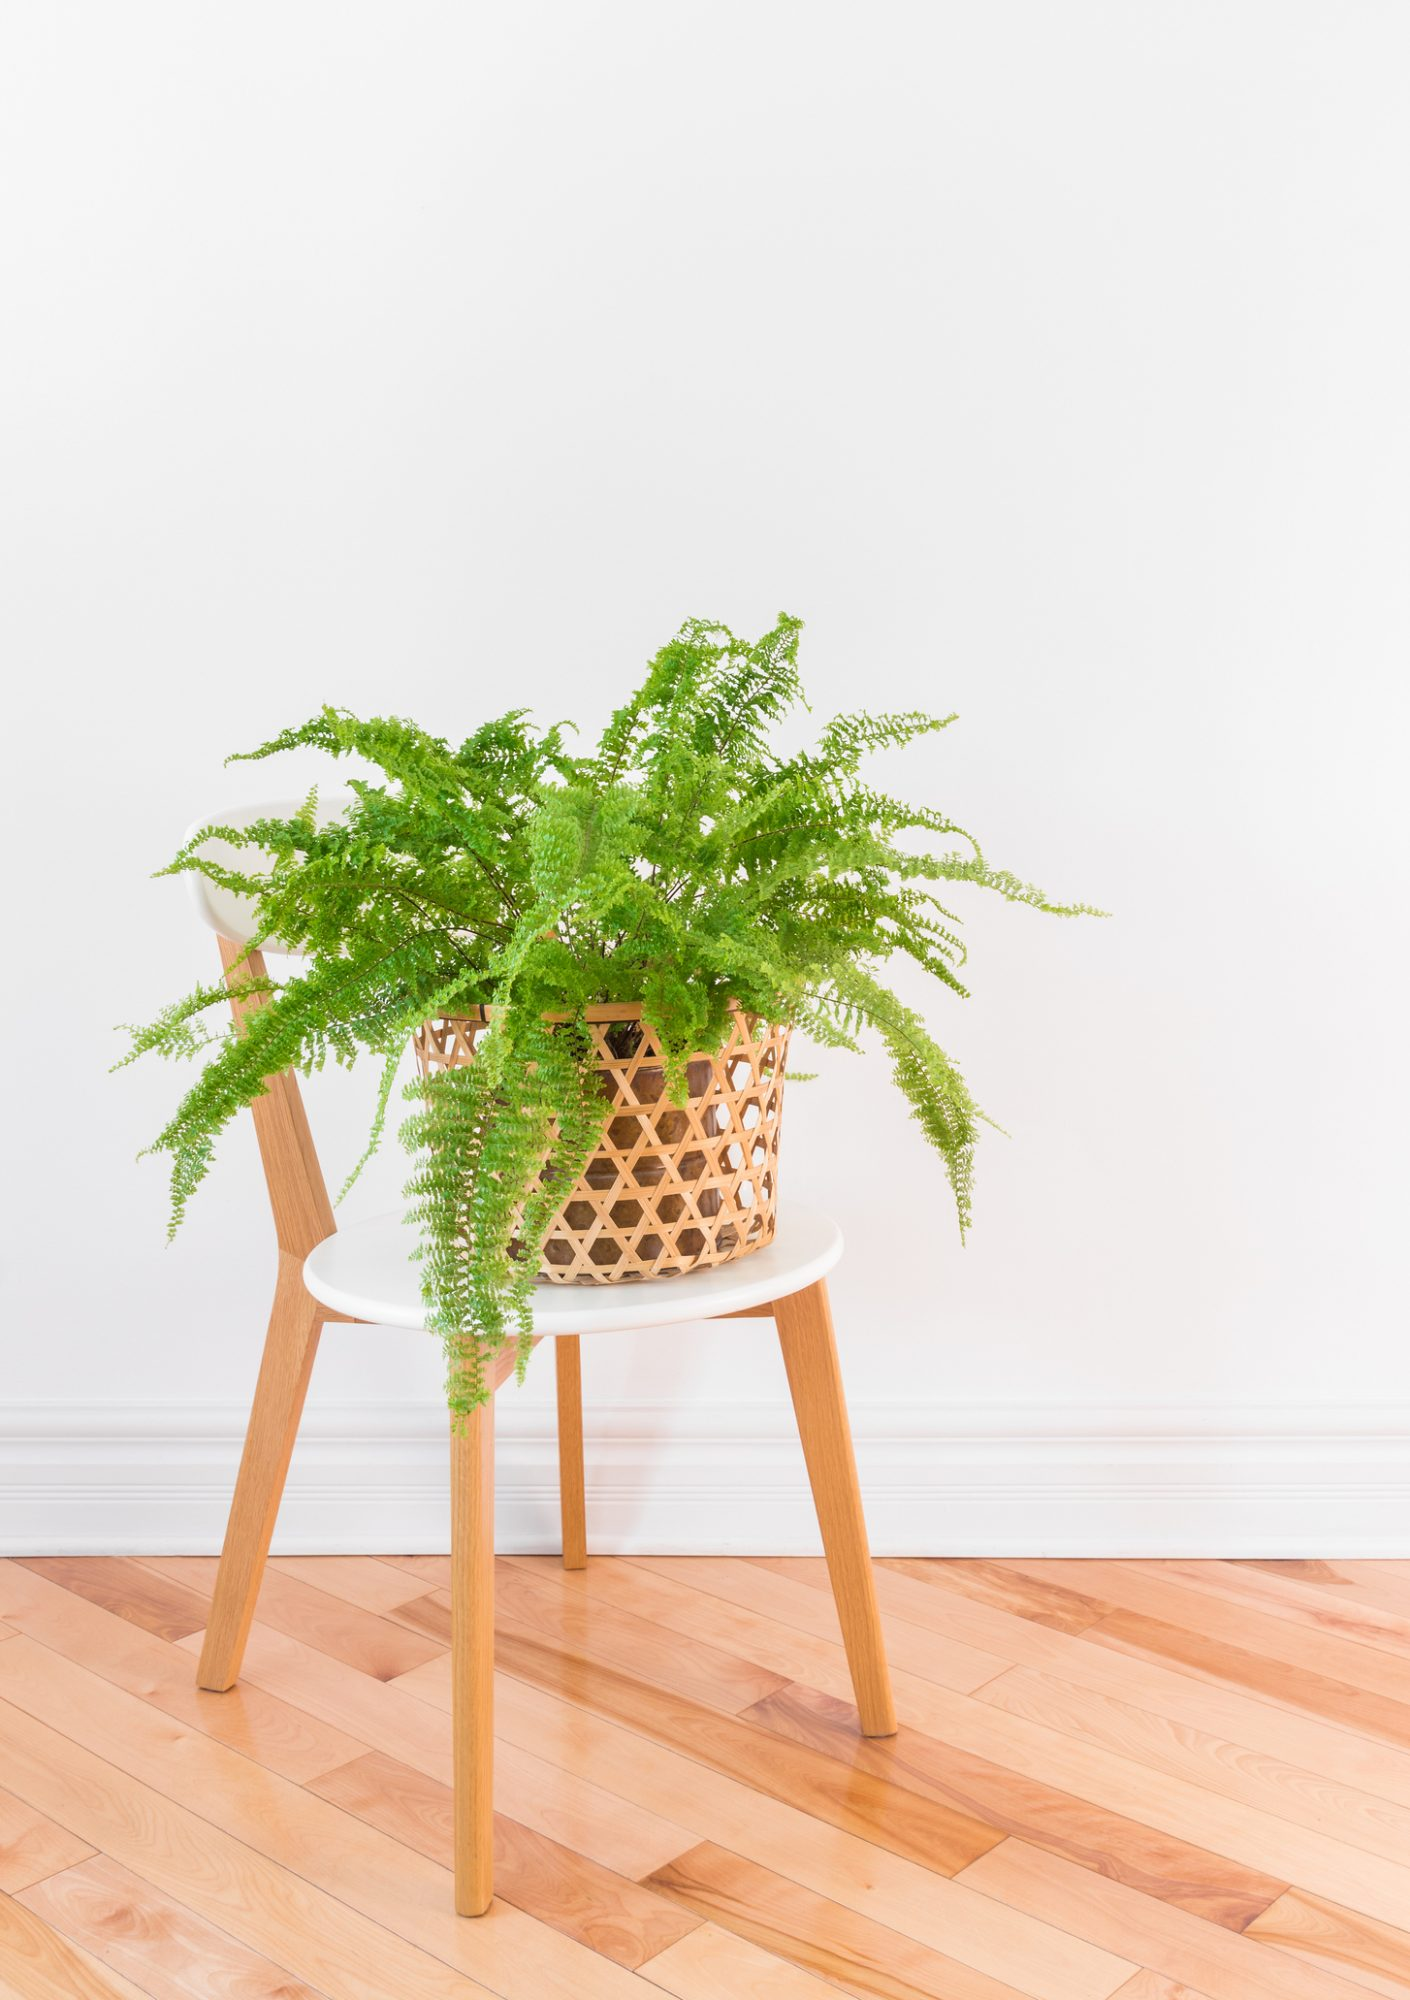 Plants That Clean the Air, Boston Fern